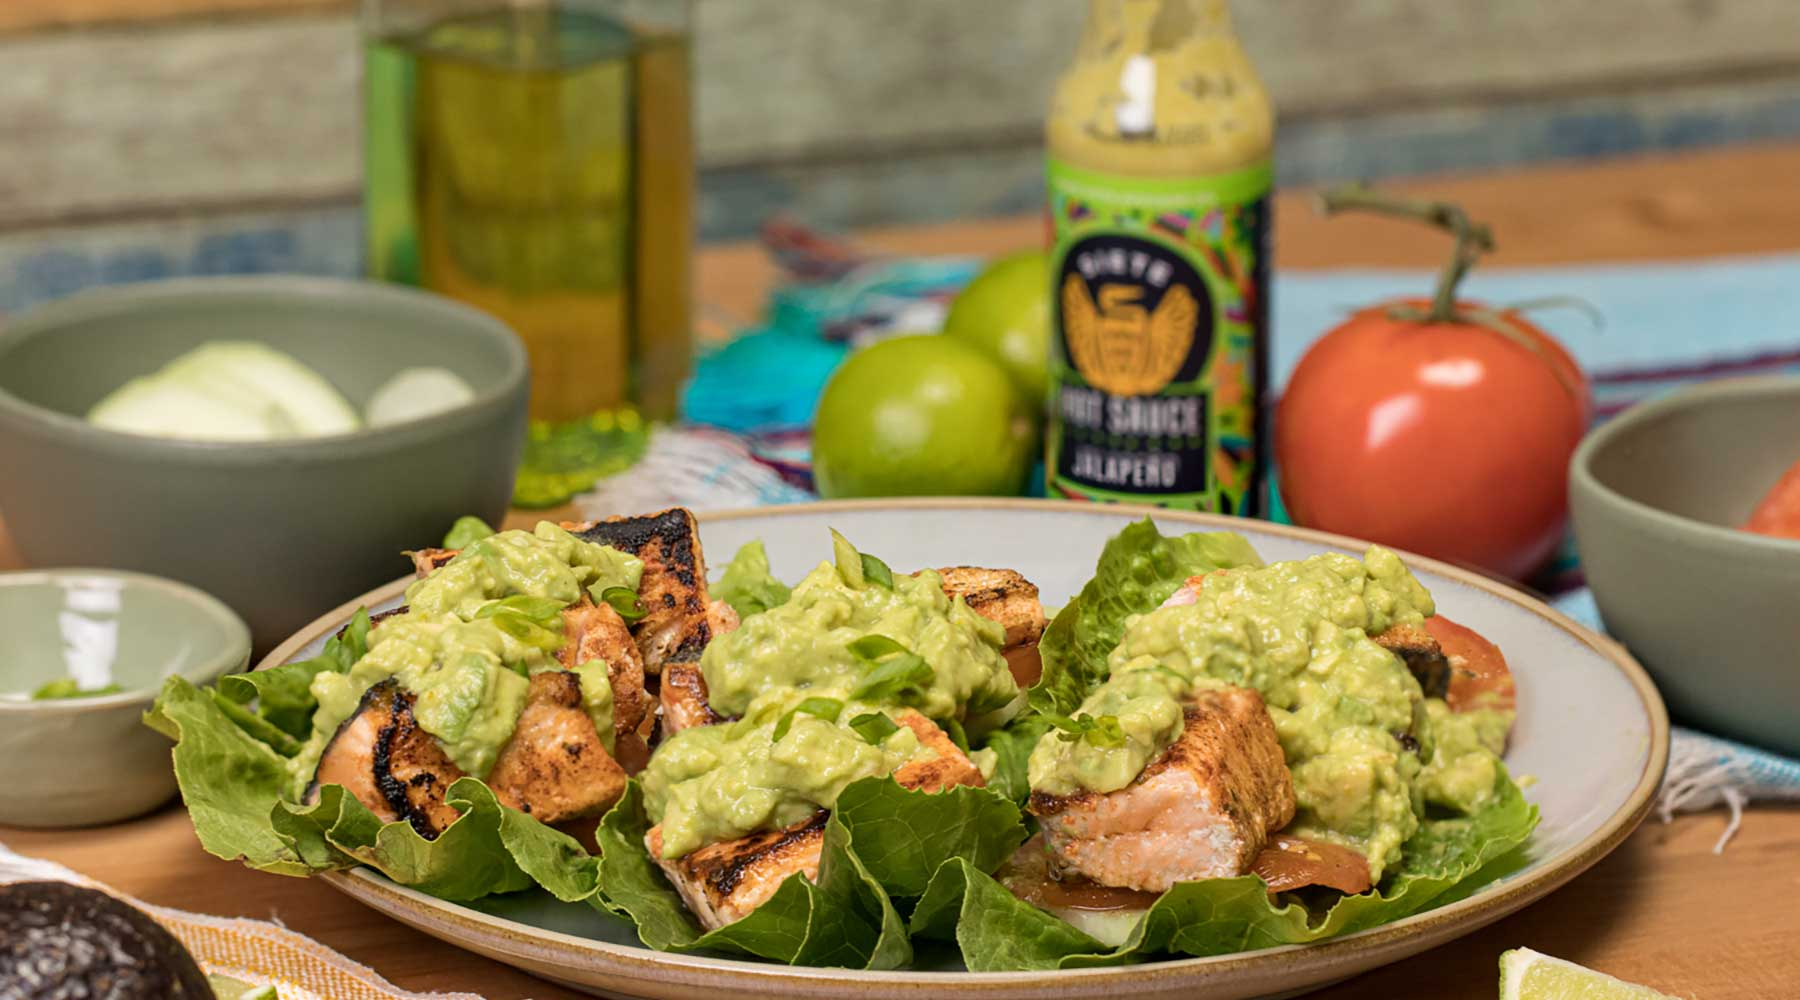 Salmon & Avocado Lettuce Wraps